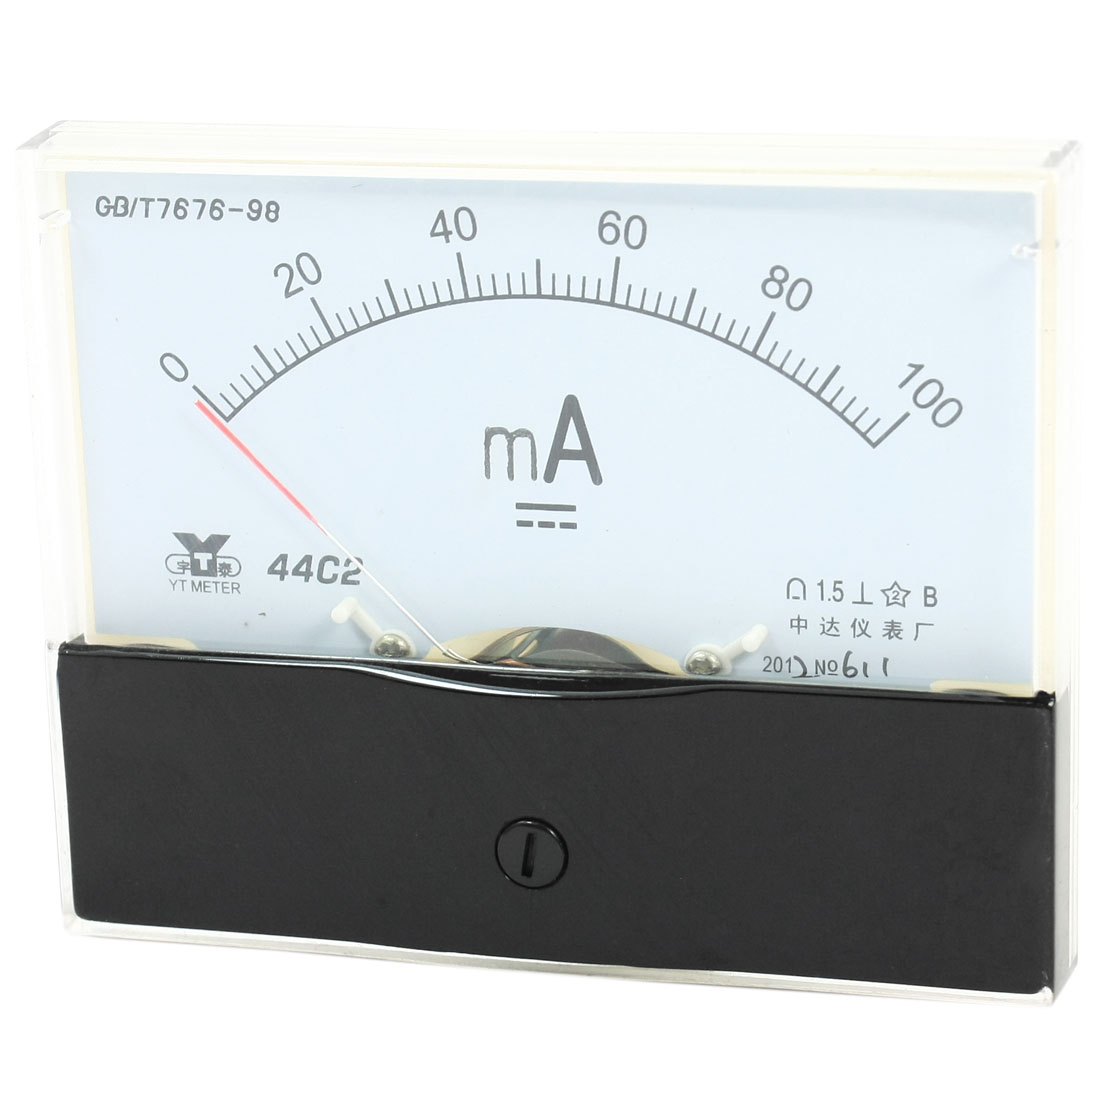 Rectangle Measurement Tool Analog Panel Ammeter Gauge DC 0 - 100mA Measuring Range 44C2